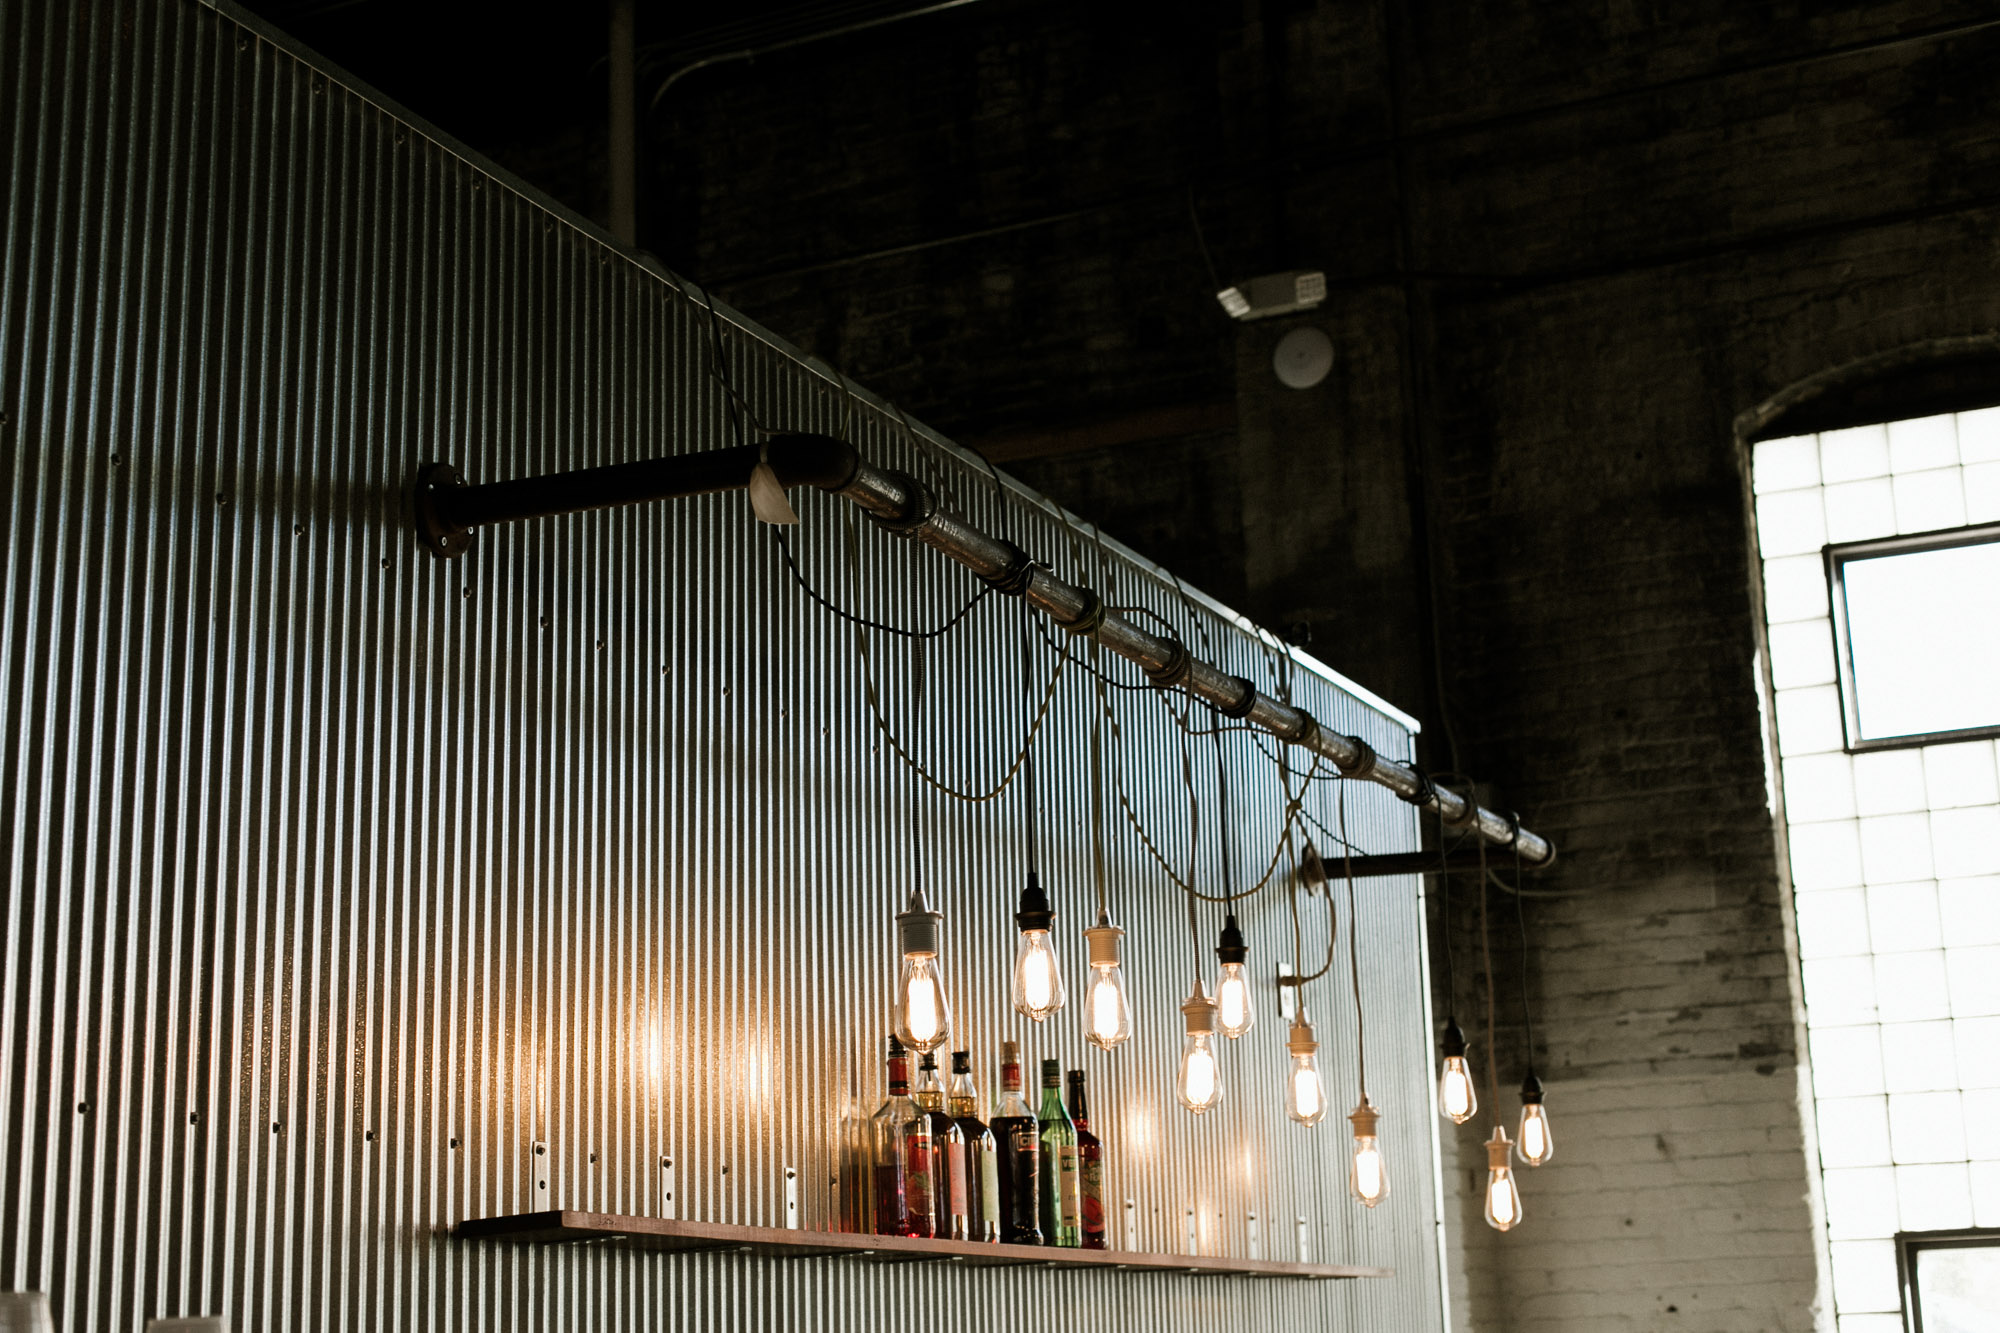 Industrial lighting wedding decor at the NP Event Space, photography by Britt DeZeeuw